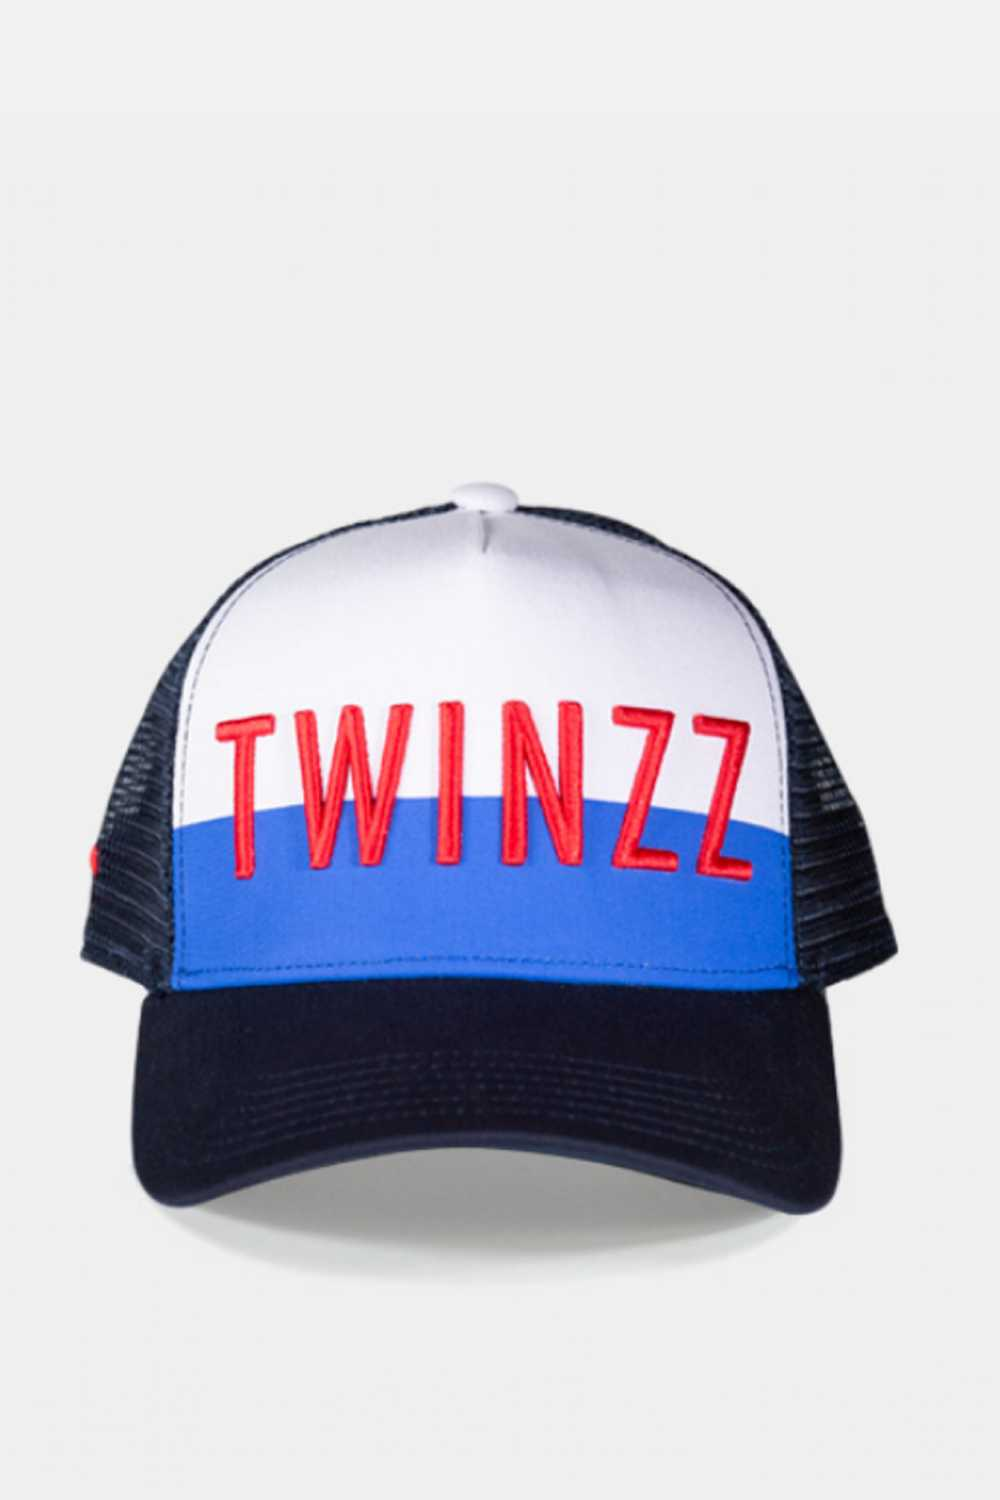 Twinzz 3D Mesh Trucker Cap -  Navy/White/Red - 1